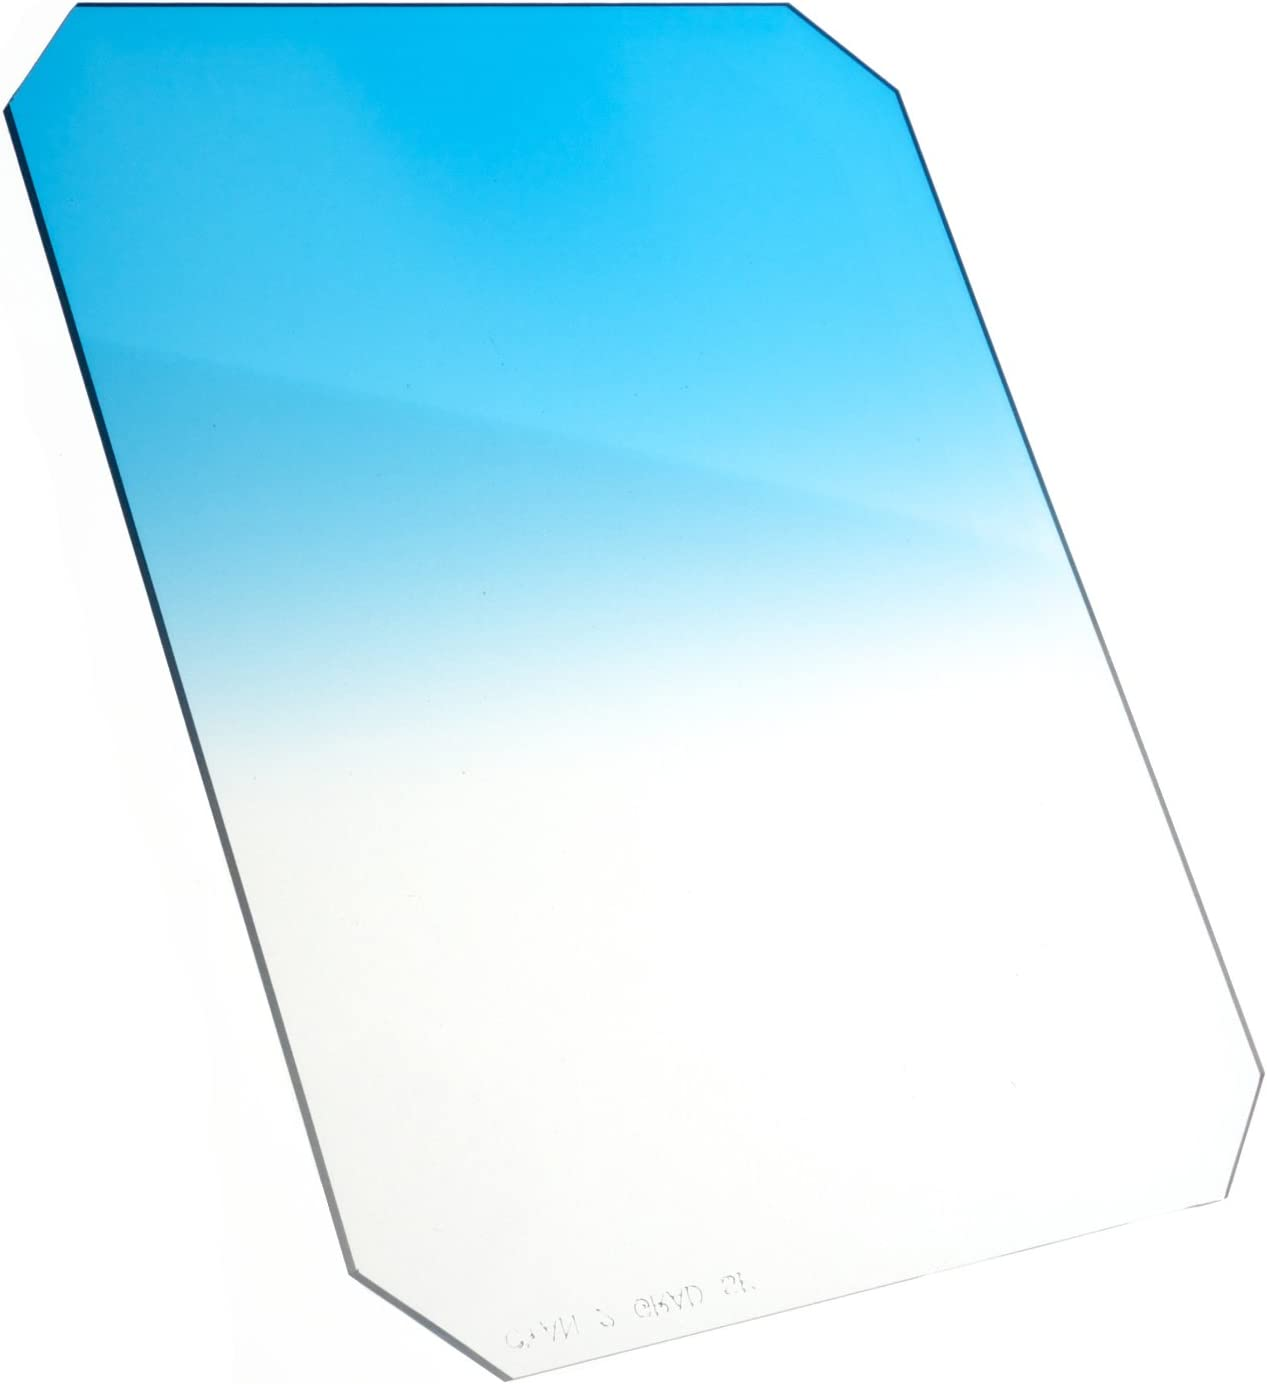 2.67x3.35 Resin Color Grad Soft Edge Cyan 1 Formatt-Hitech 67x85mm